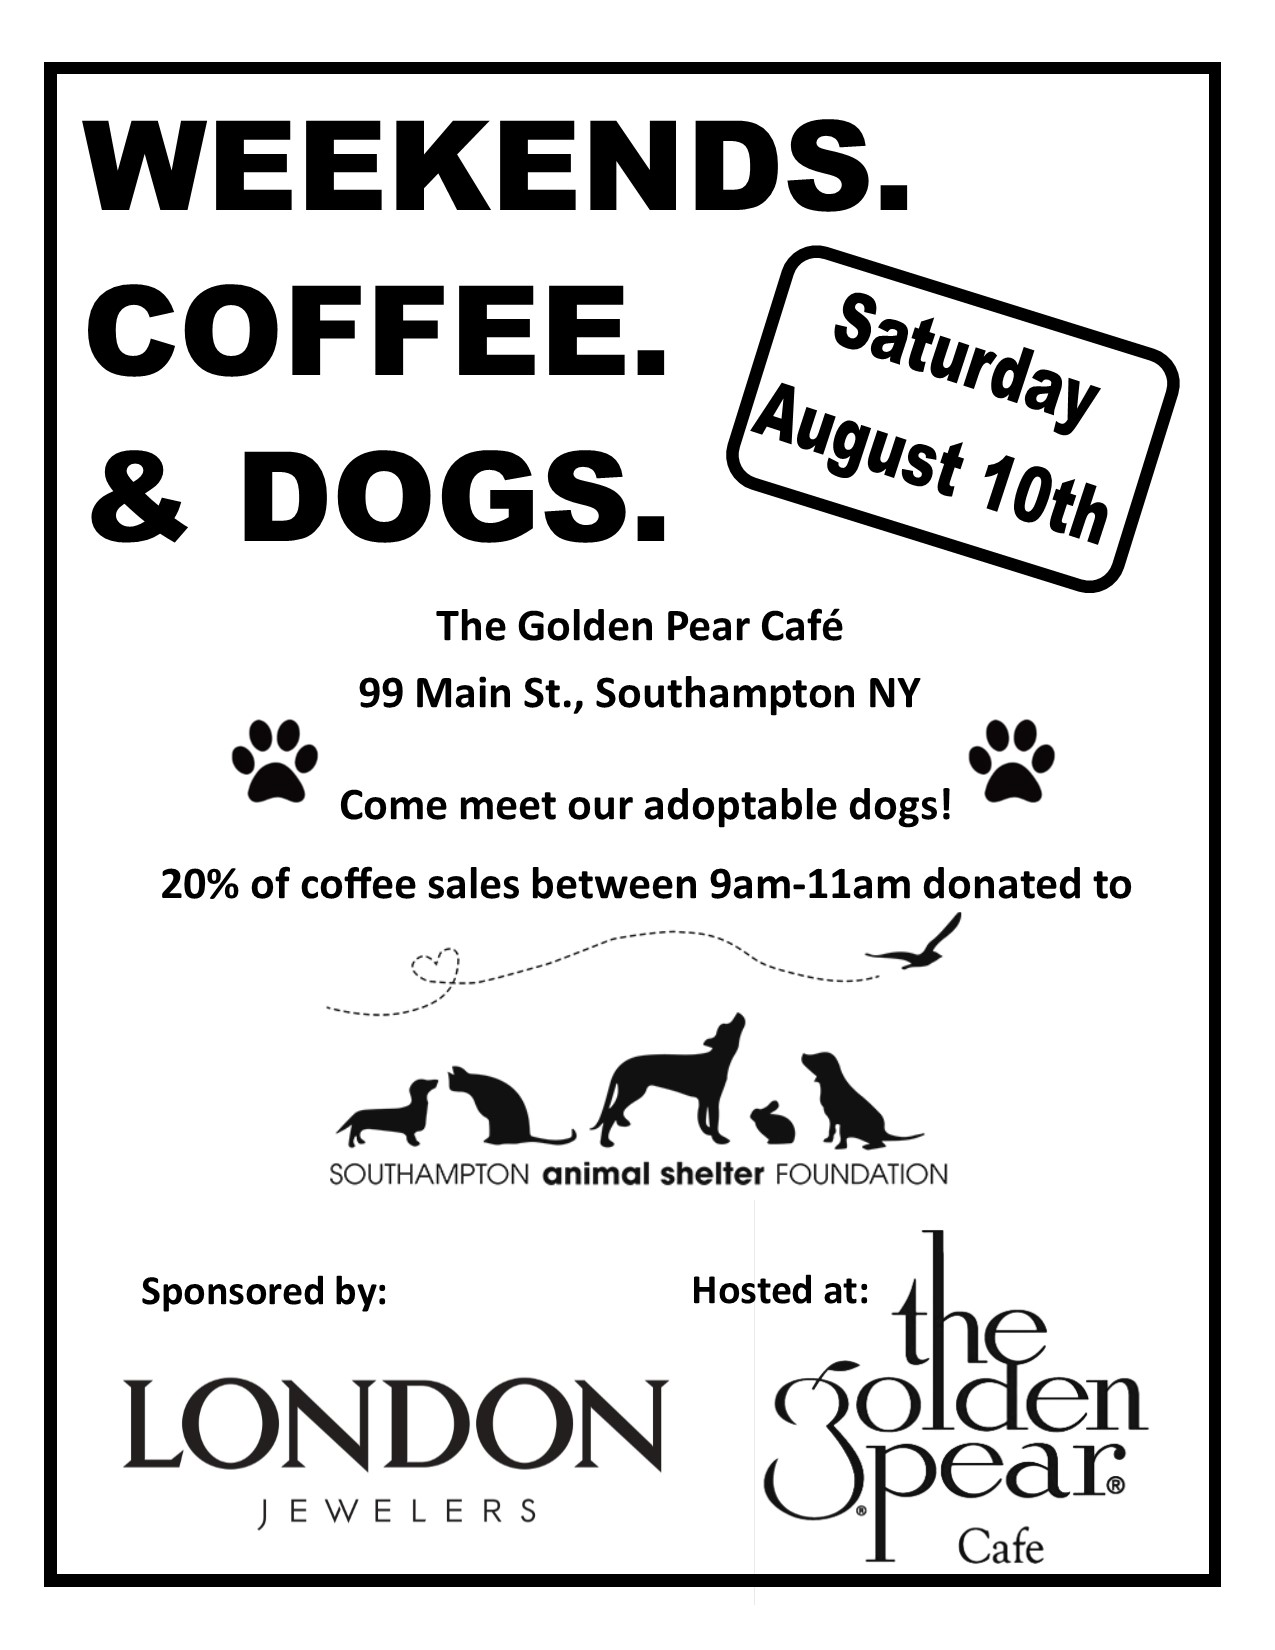 Weekend, Coffee and Dogs!